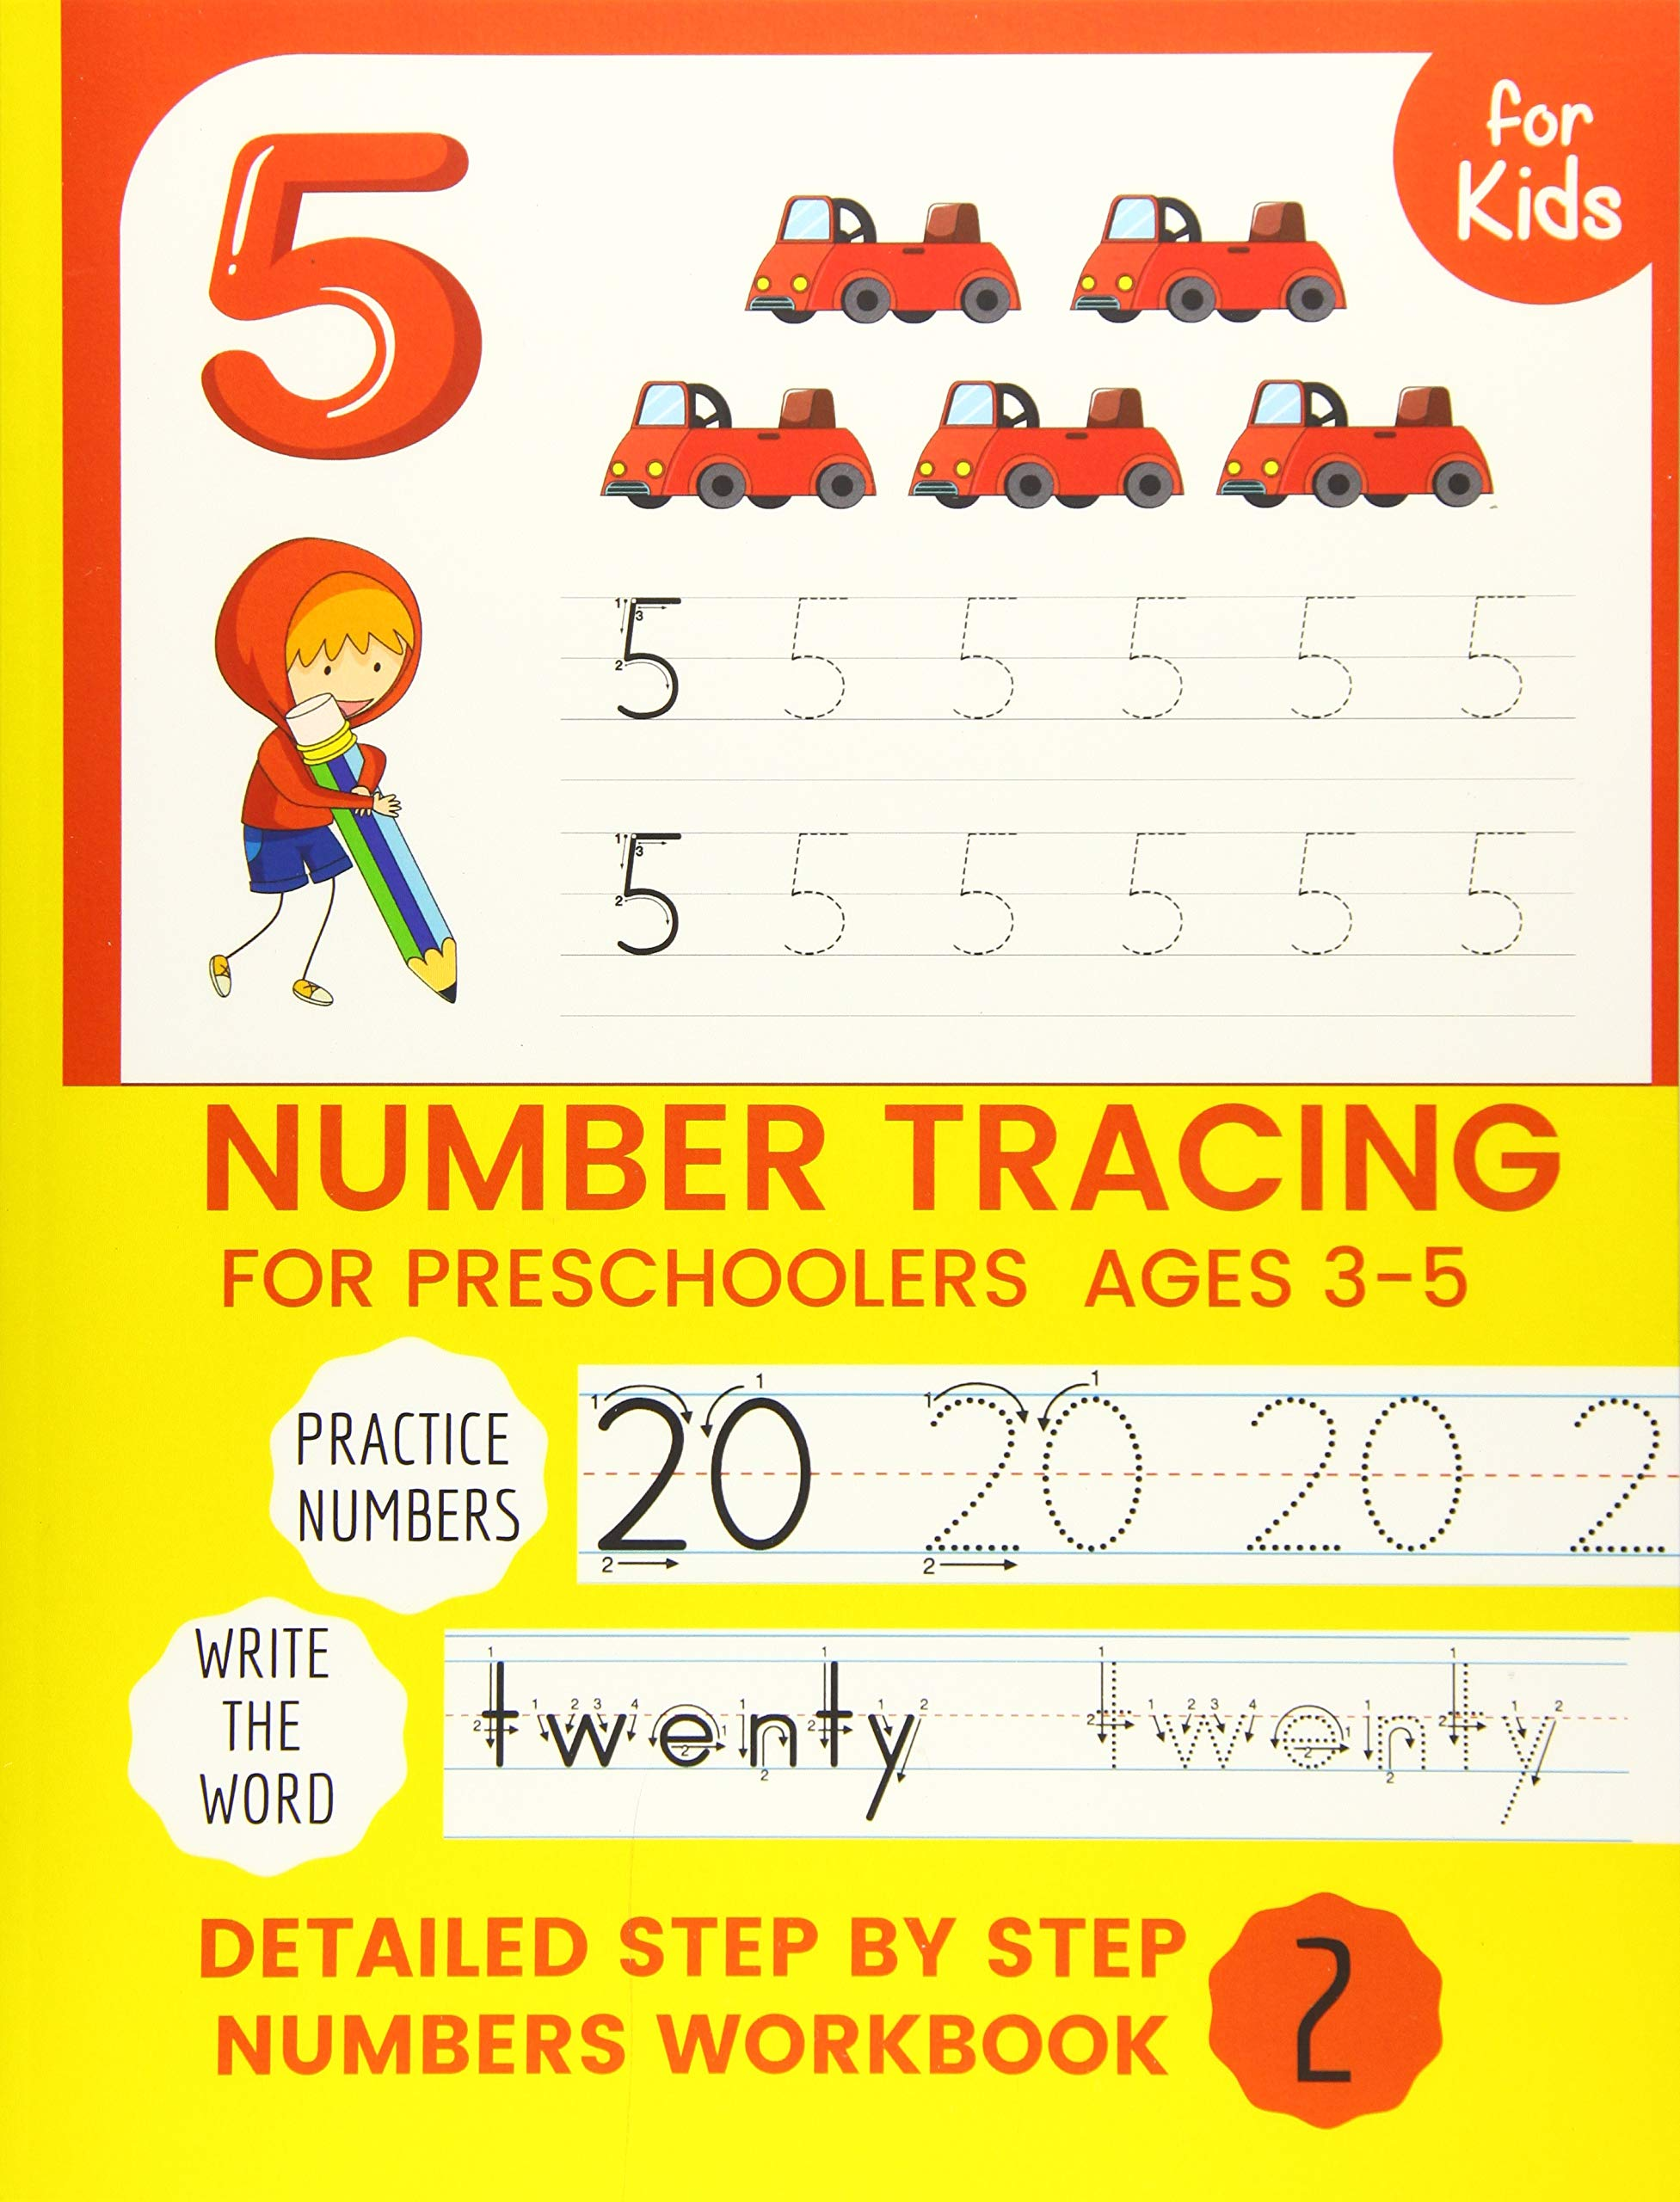 Number Tracing Book for Preschoolers Number tracing books for kids ages 3-5,Number tracing workbook,Number Writing Practice Book,Number Tracing Book Learning the easy Maths for kids